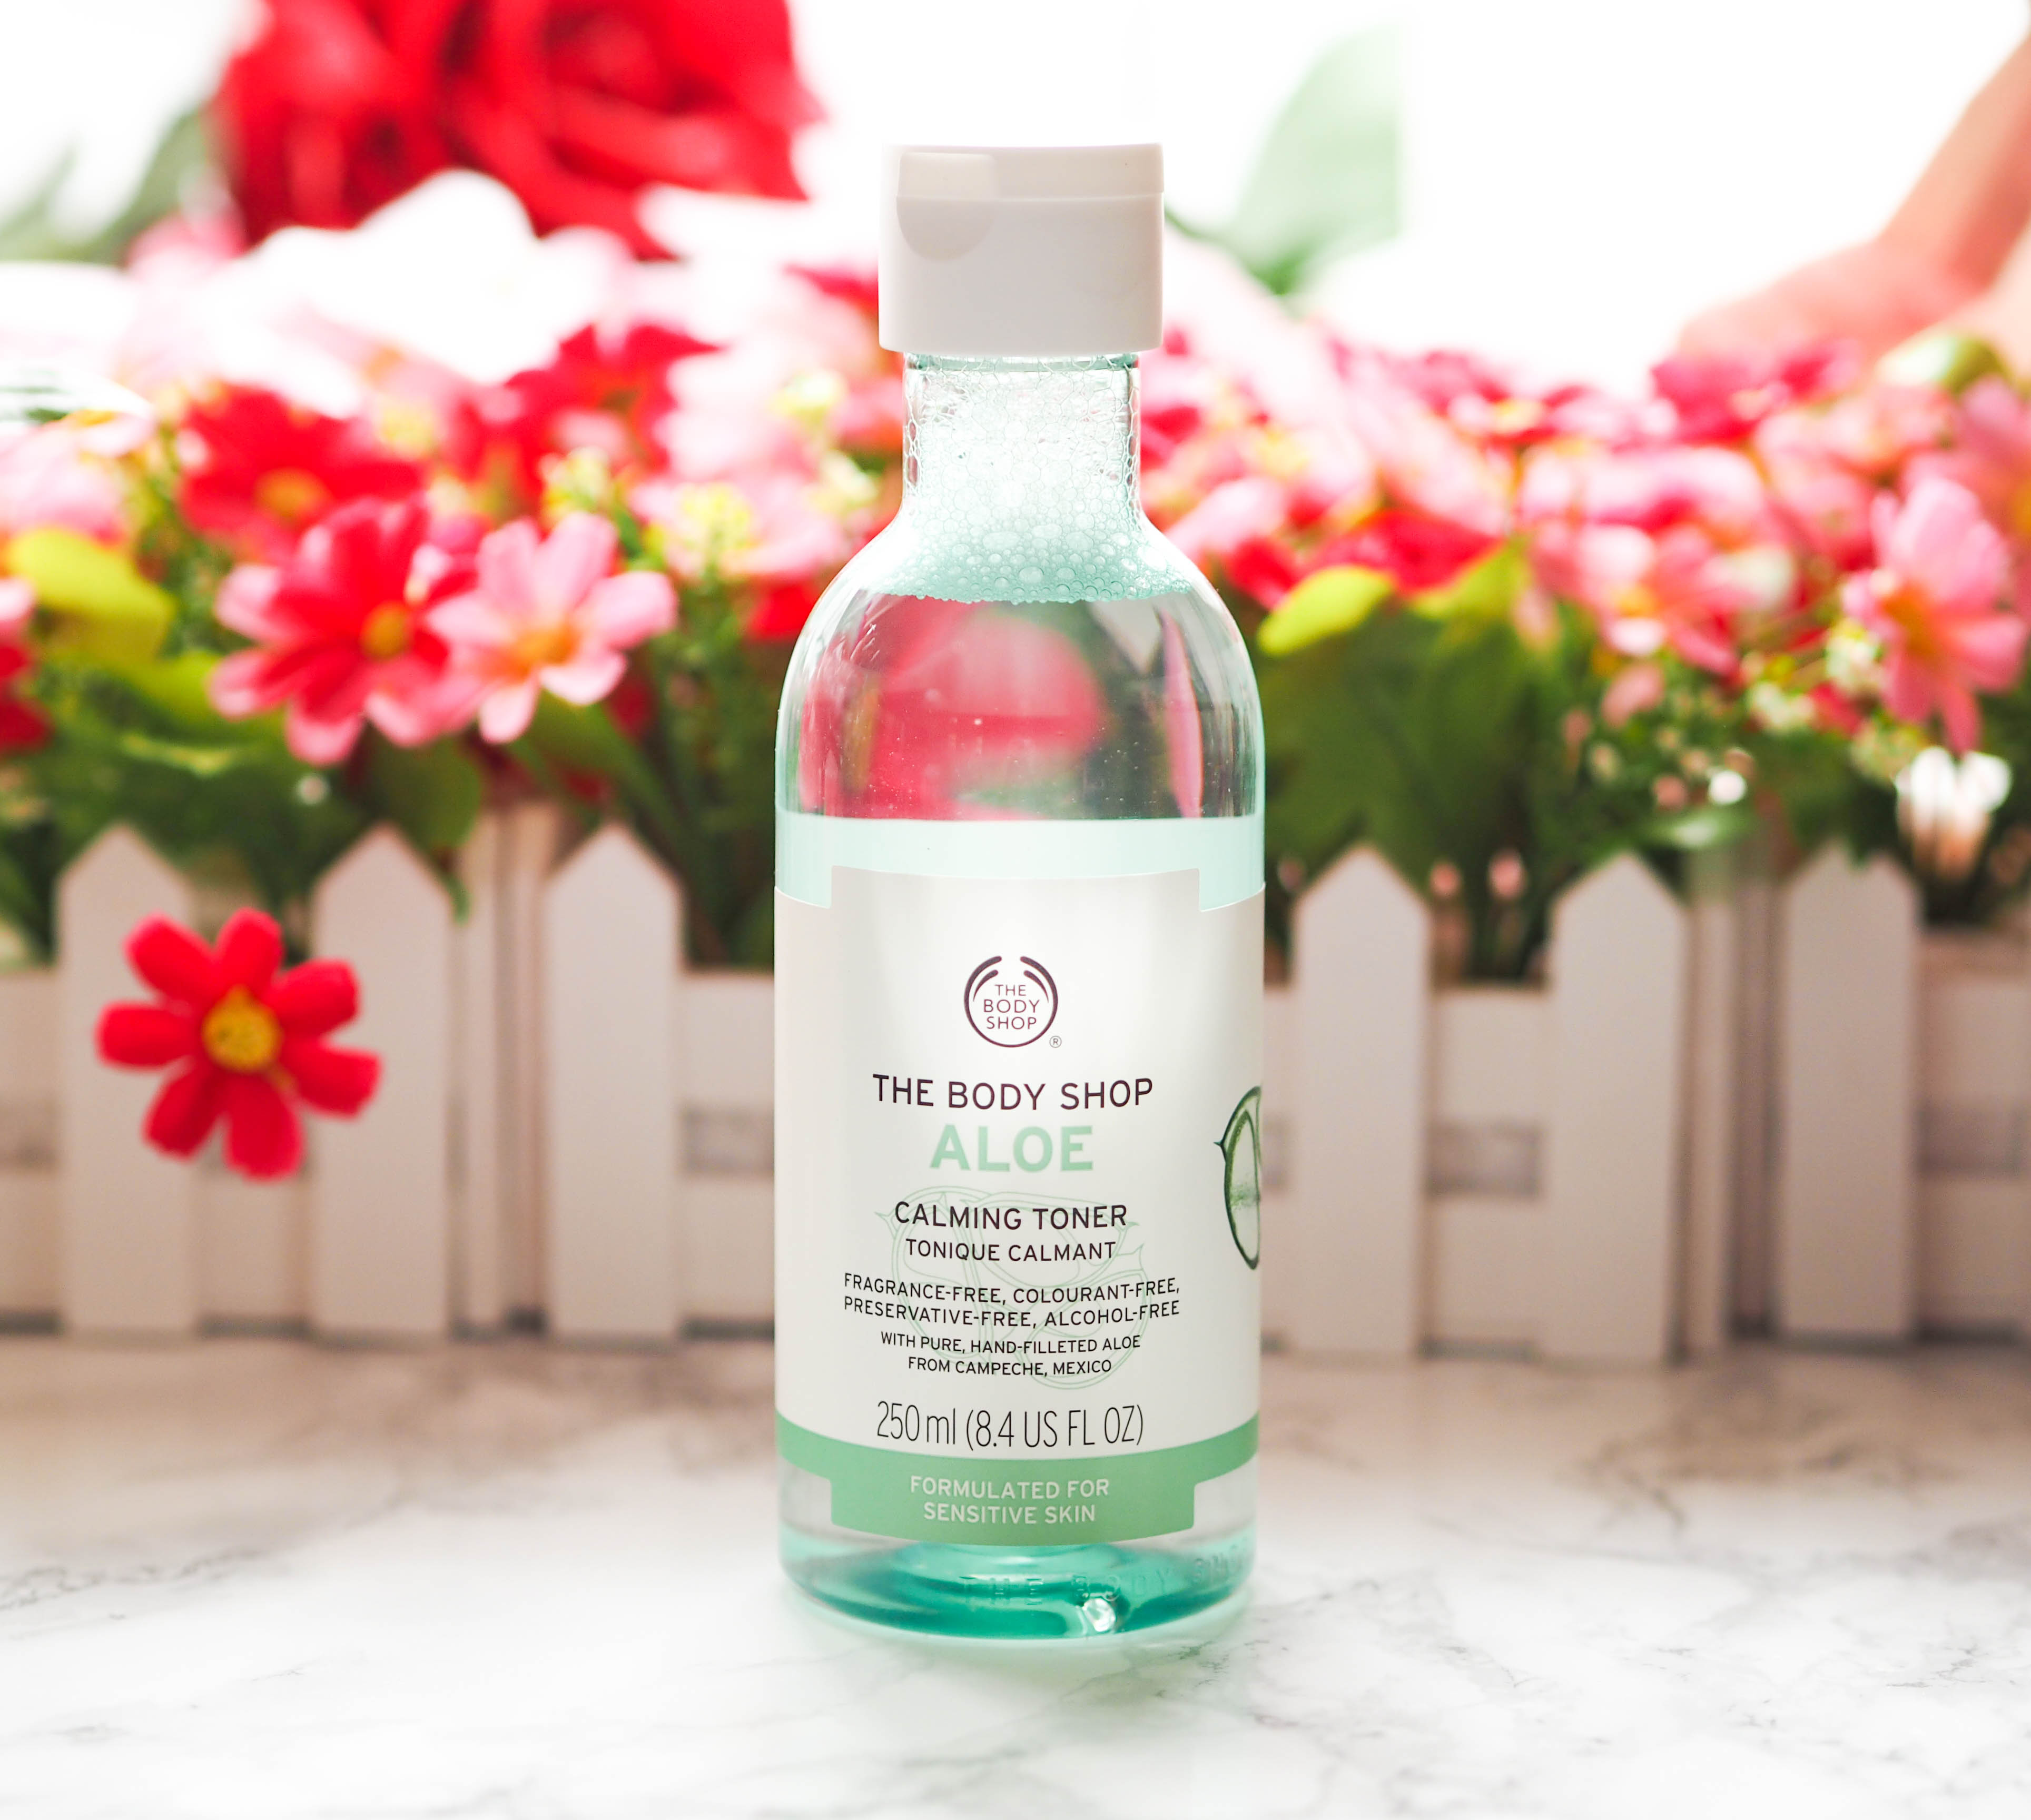 The Body Shop Aloe Soothing Toner